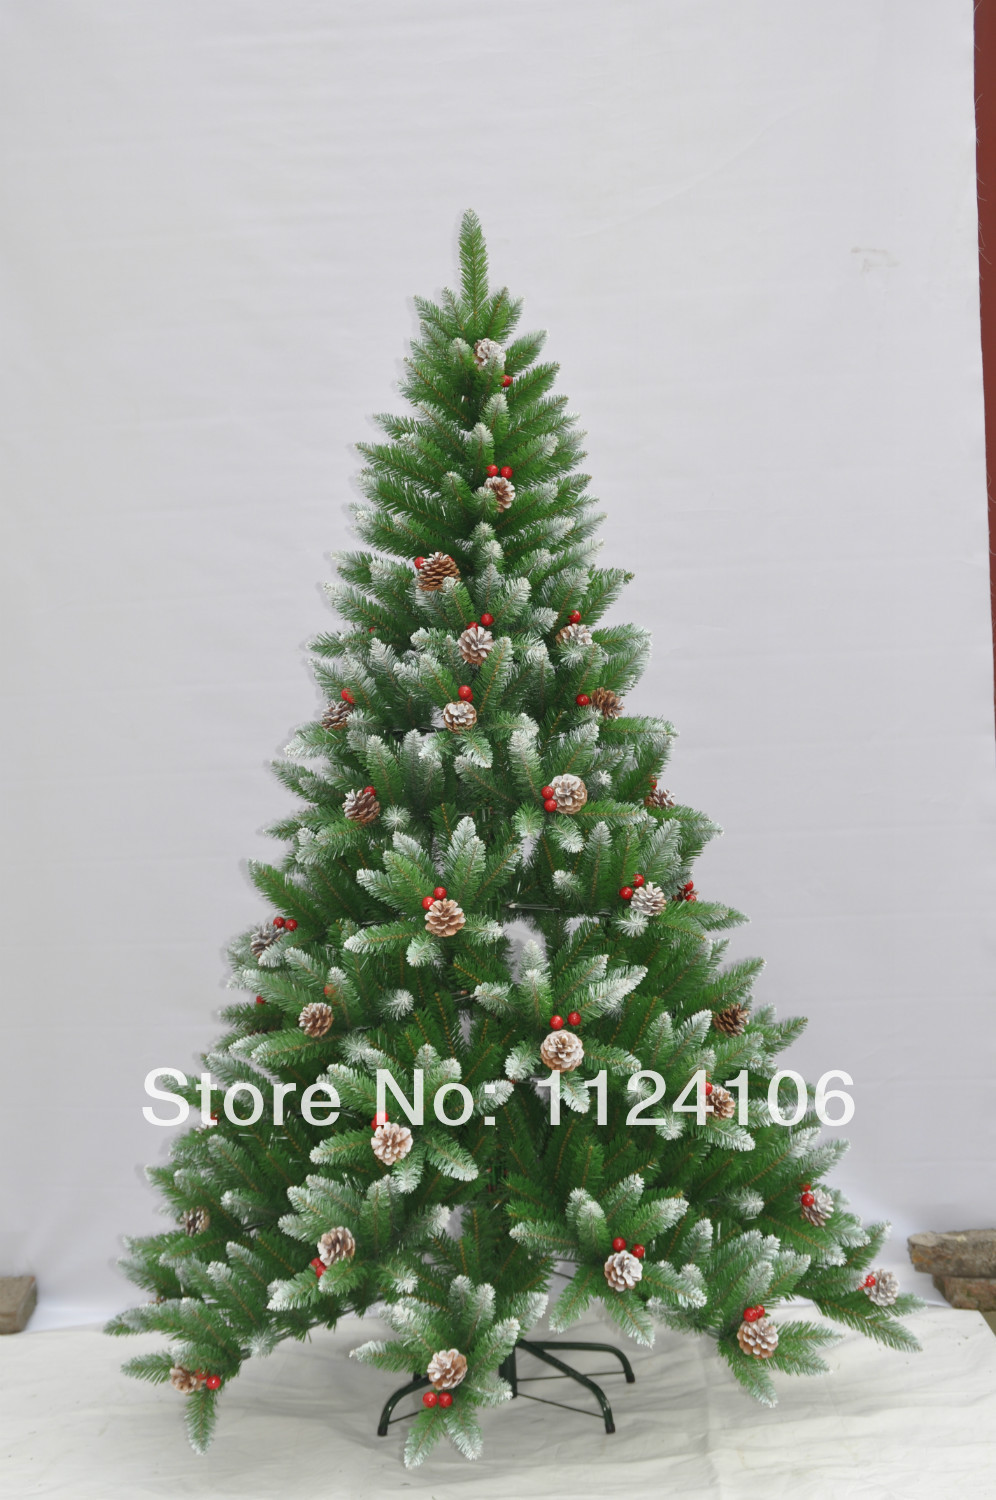 Top Selling Europe and United States Fashion ROHS Christmas tree 150cm xmas tree with snow and cone supplier home Decoration(China (Mainland))